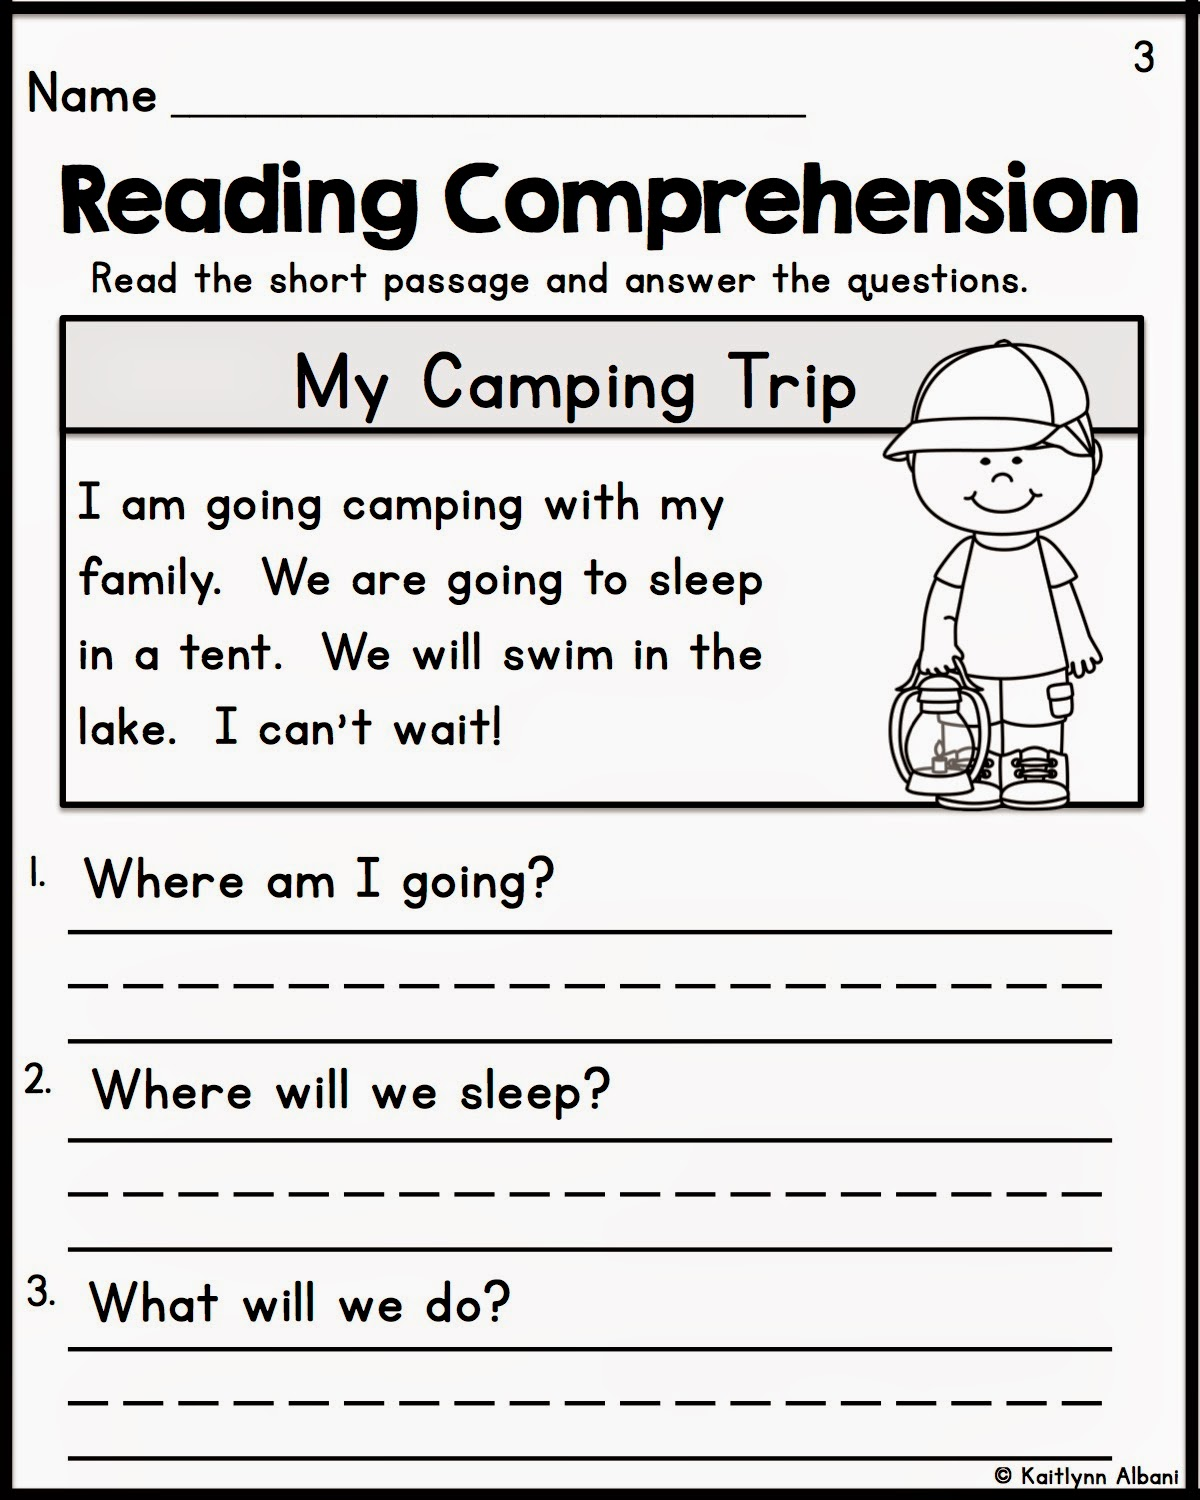 Worksheet 2nd Grade Reading Comprehension Worksheets Multiple Choice kindergarten reading comprehension coffemix the best of teacher entrepreneurs ii reading